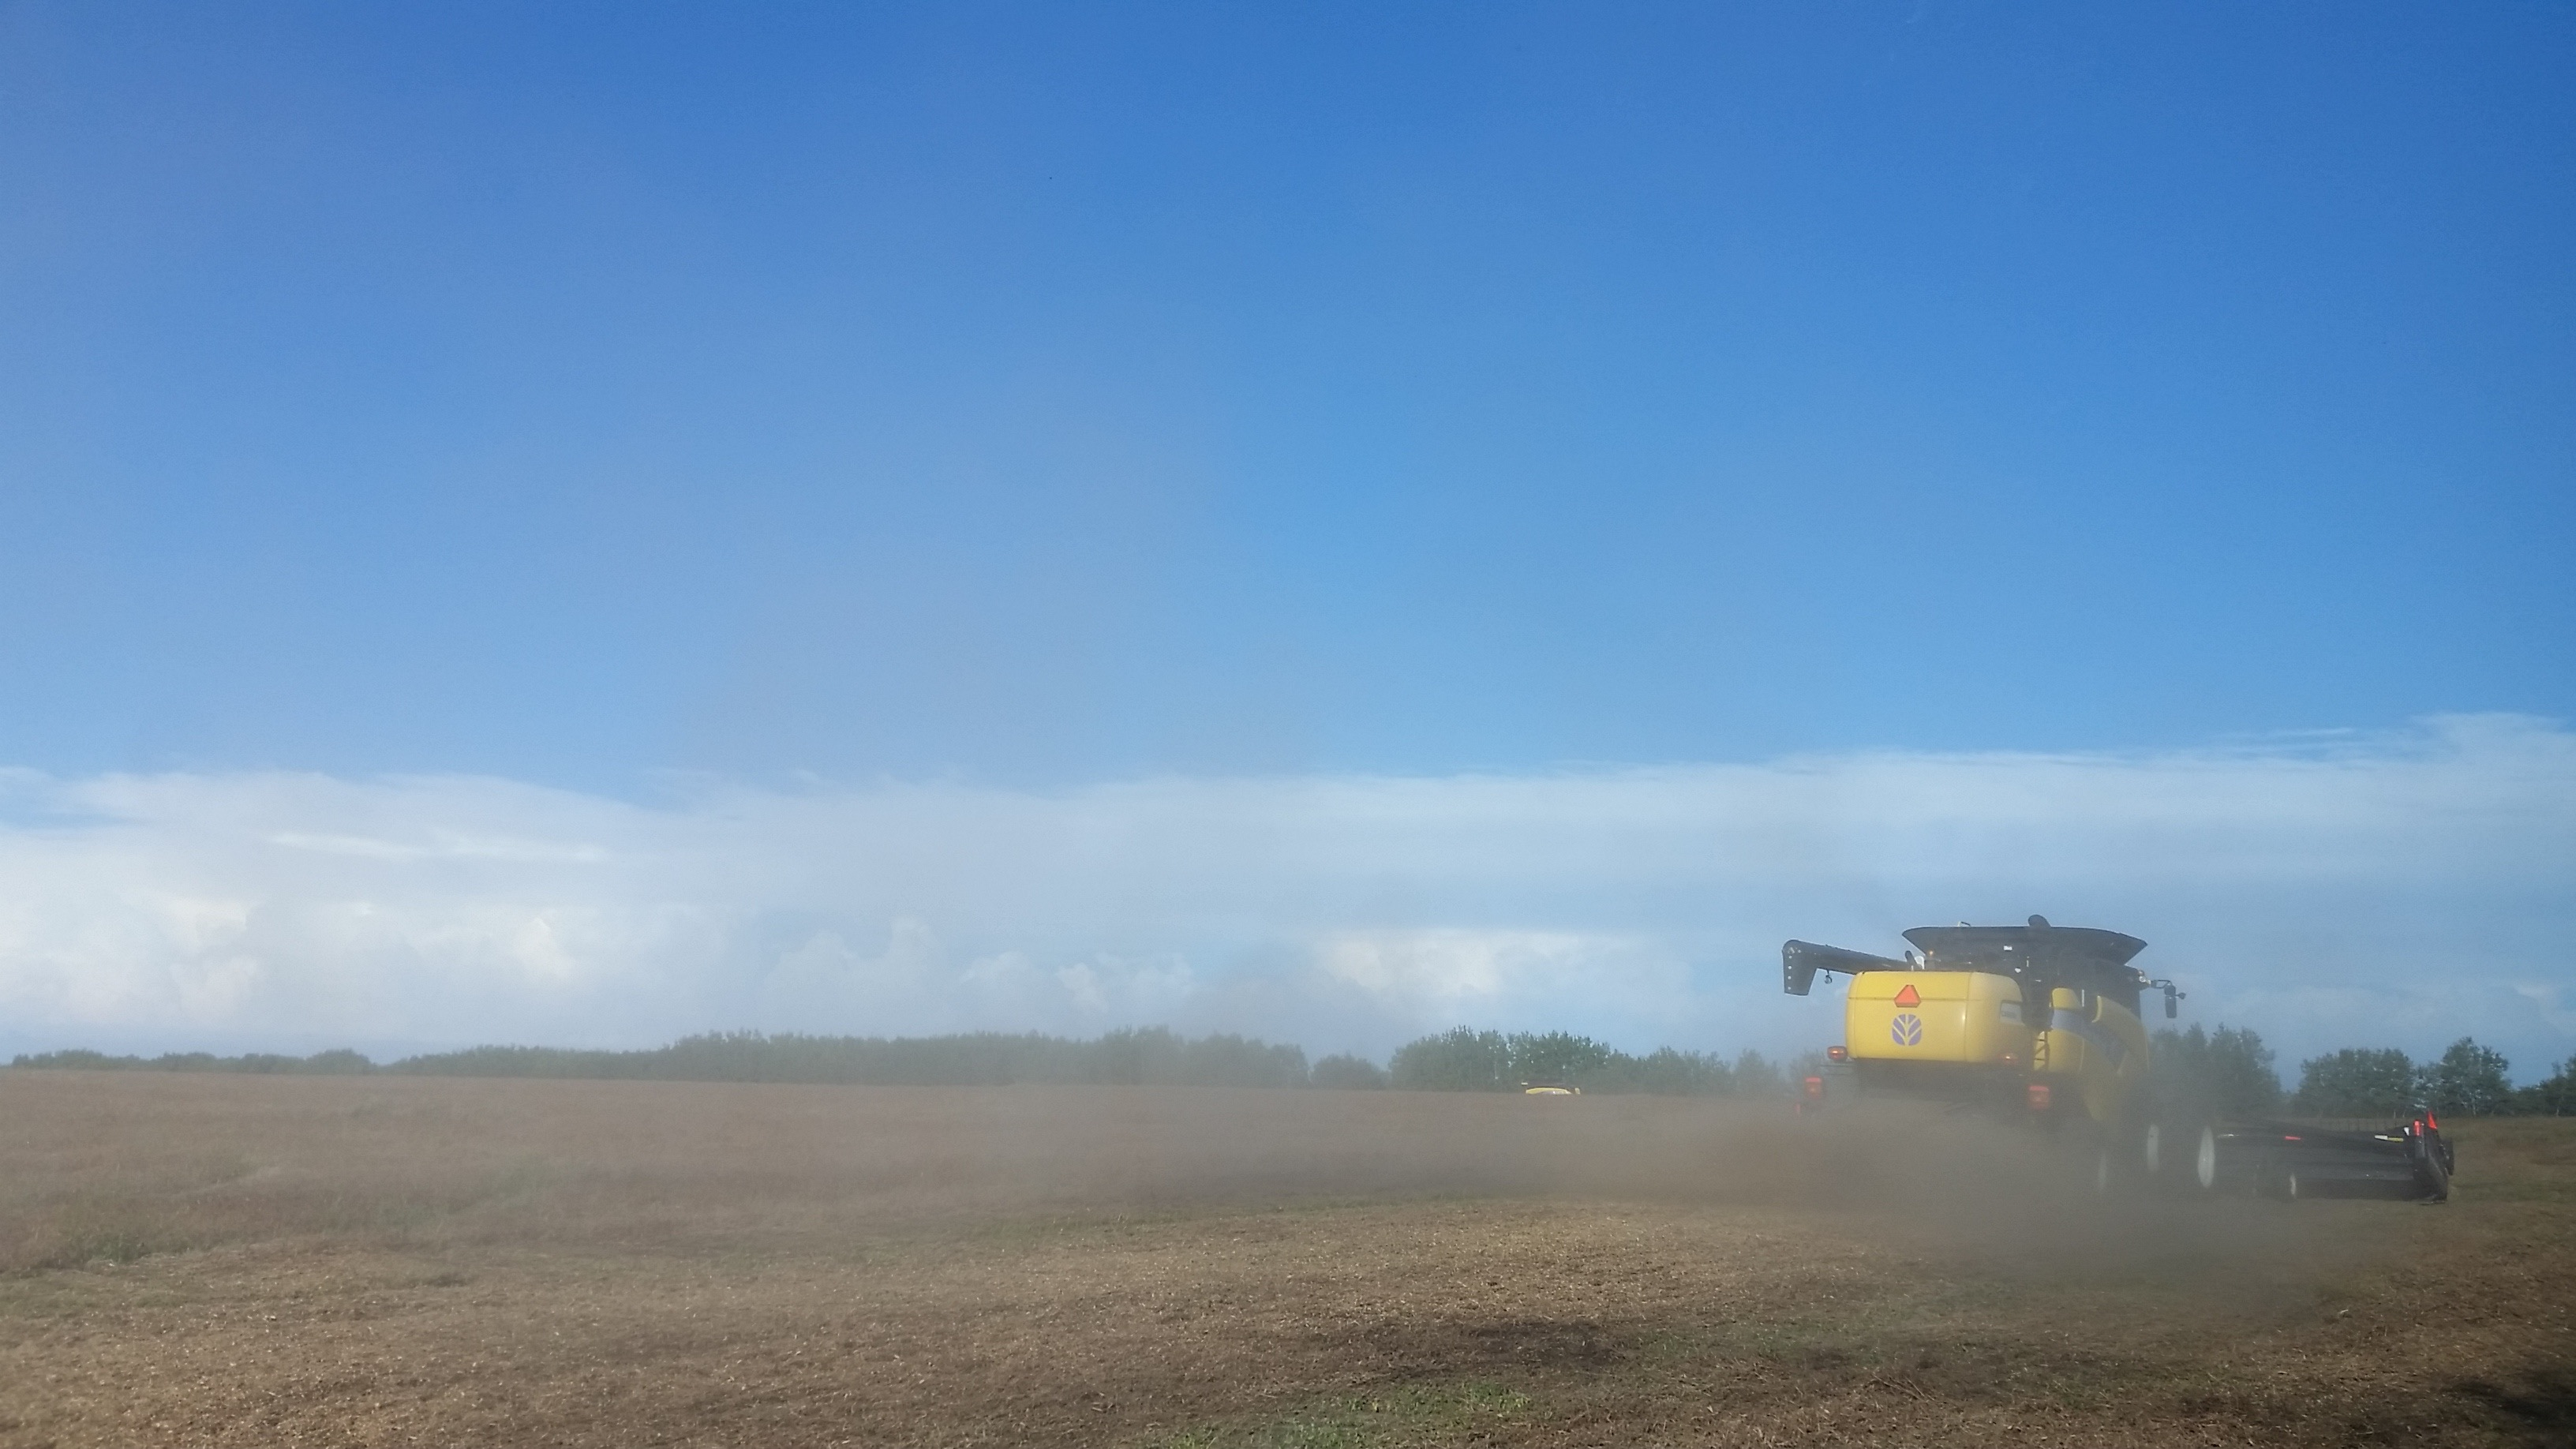 Combines kicking up some dust